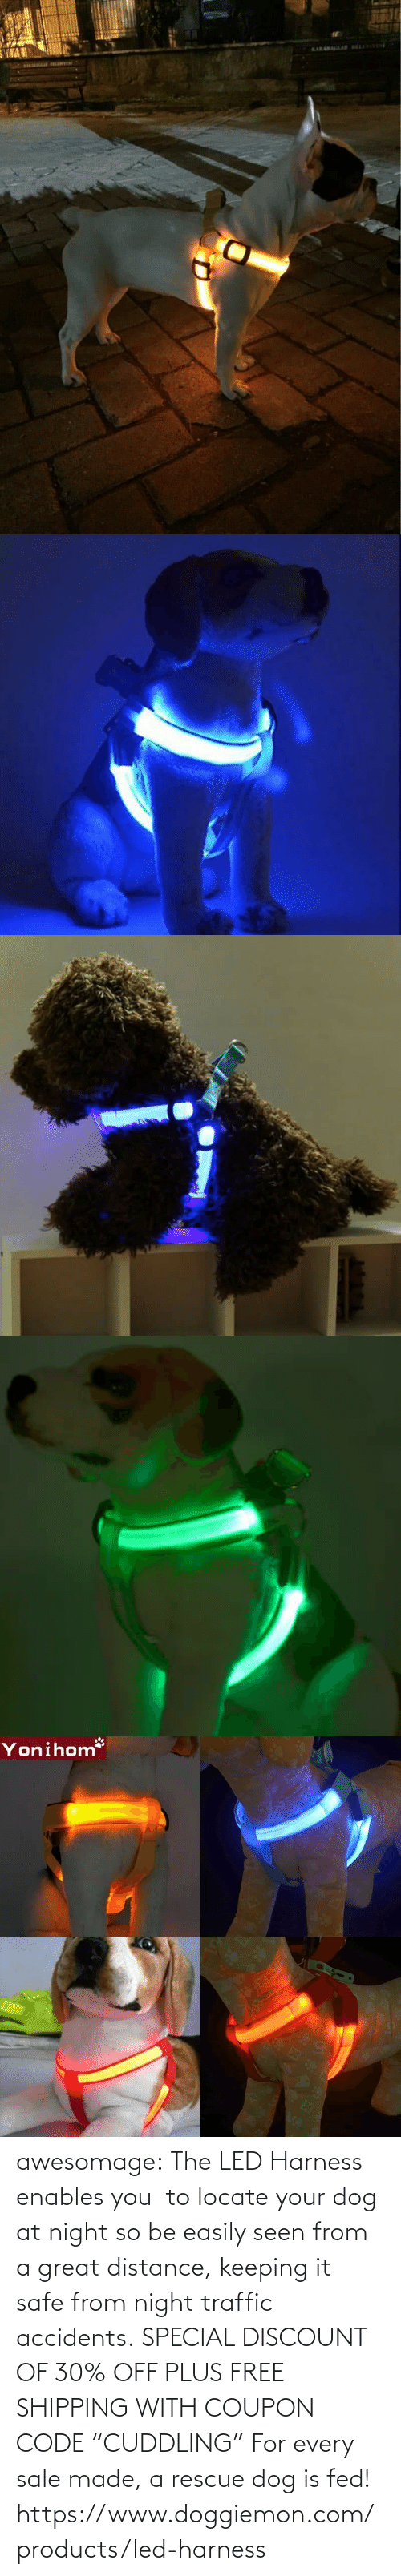 "seen: awesomage:   The LED Harness enables you  to locate your dog at night so be easily seen from a great distance, keeping it safe from night traffic accidents. SPECIAL DISCOUNT OF 30% OFF PLUS FREE SHIPPING WITH COUPON CODE ""CUDDLING"" For every sale made, a rescue dog is fed!   https://www.doggiemon.com/products/led-harness"